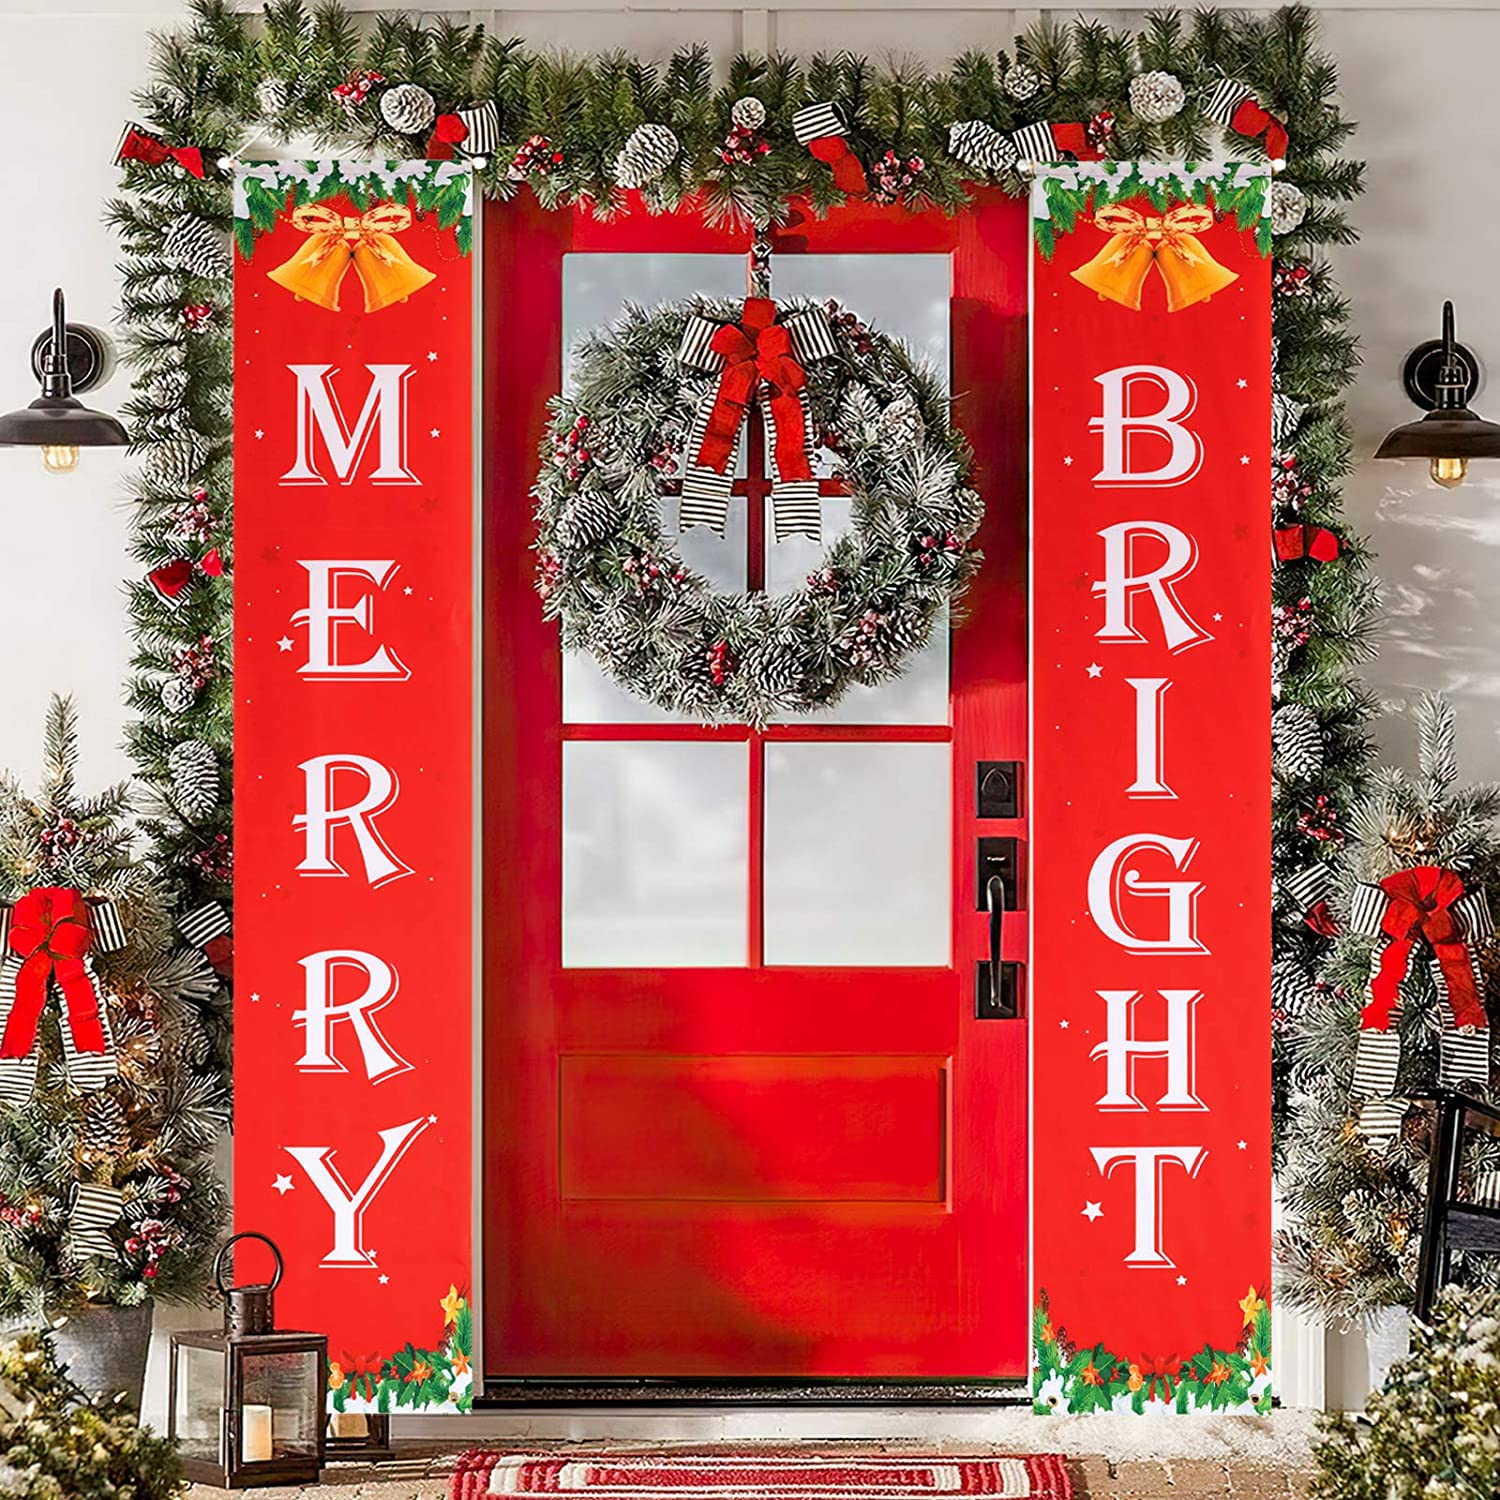 Merry Bright Banner, Welcome Home Banner for Christmas Decorations Indoor Outdoor, Christmas Front Porch Sign Decor, Garden Yard Home Window Wall Door Decor